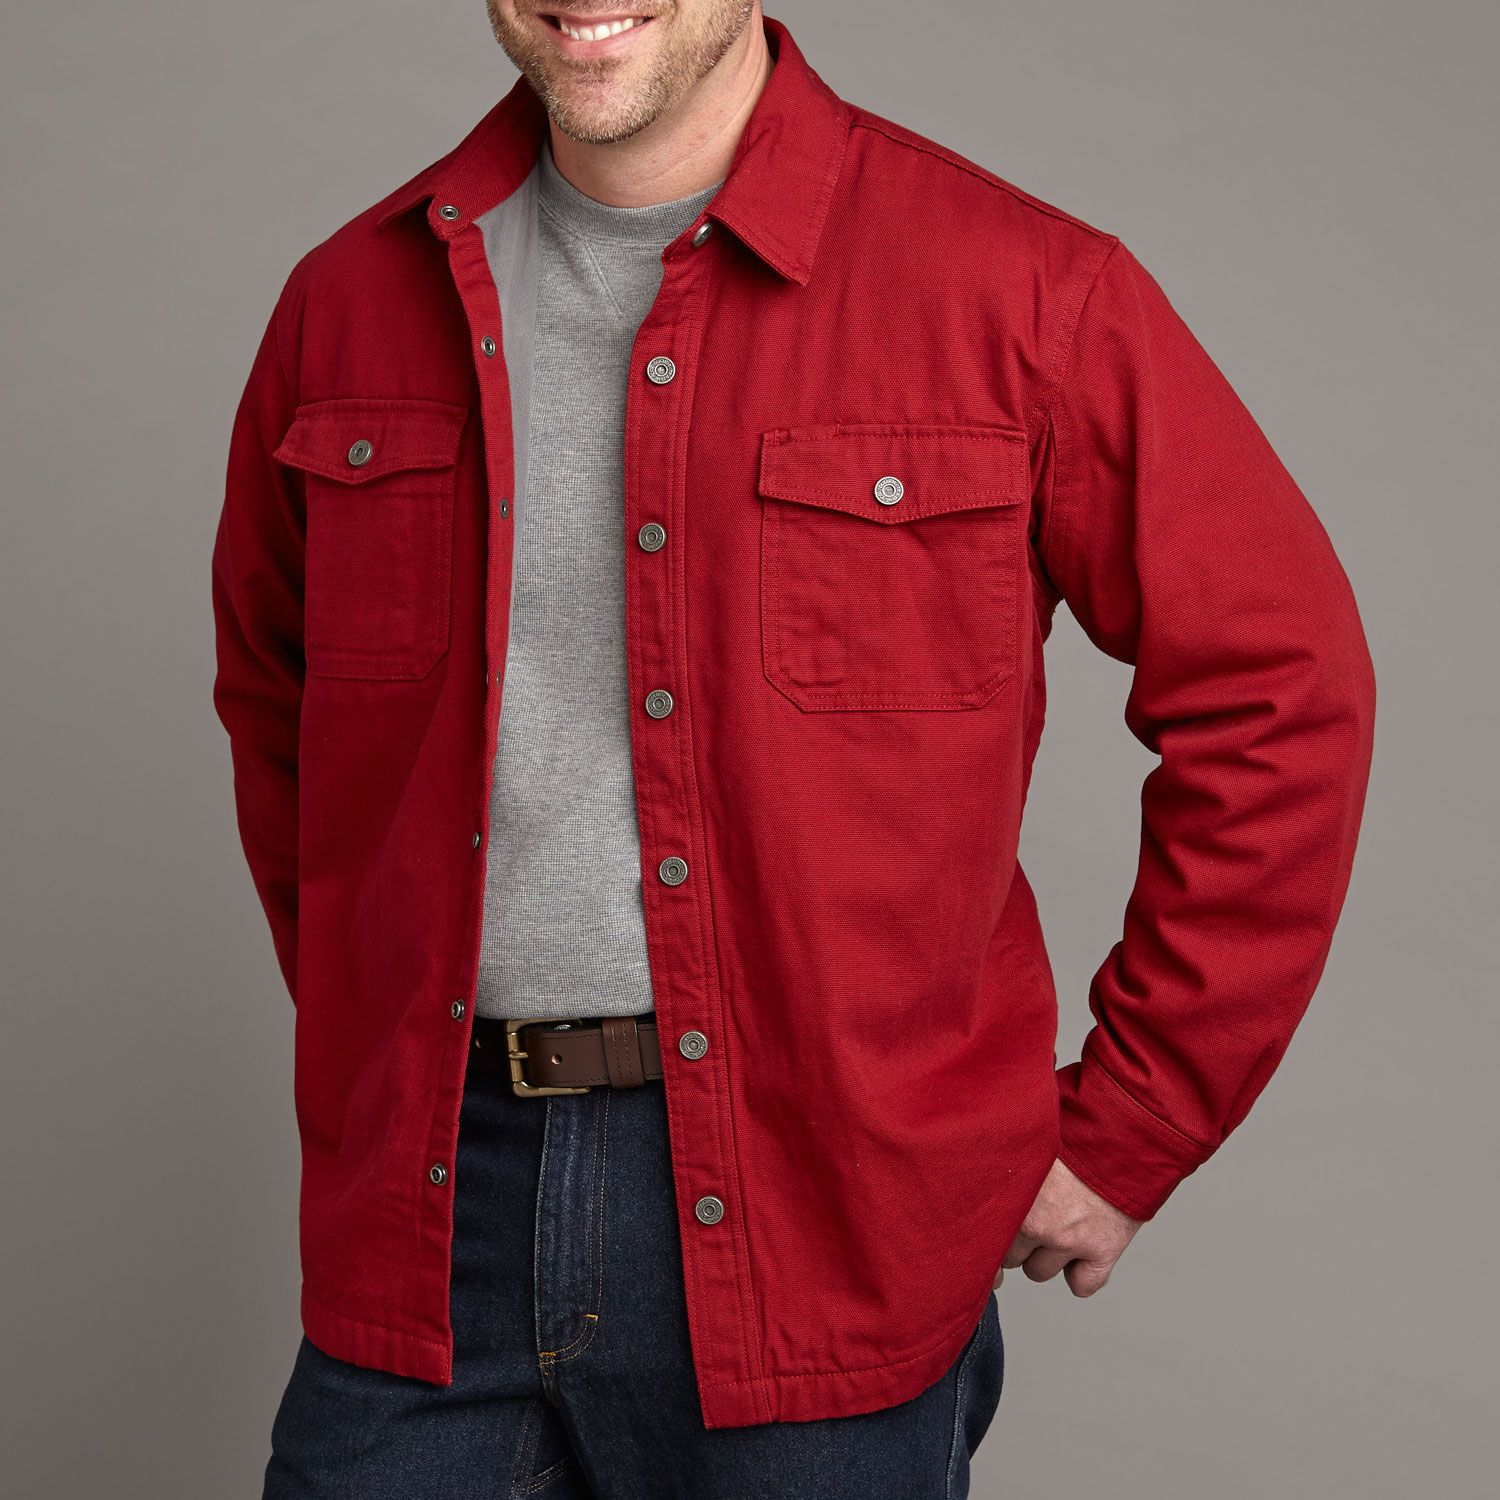 Dark Red - Duluth Trading Co Men's Fire Hose Hanger Bender Shirt ...